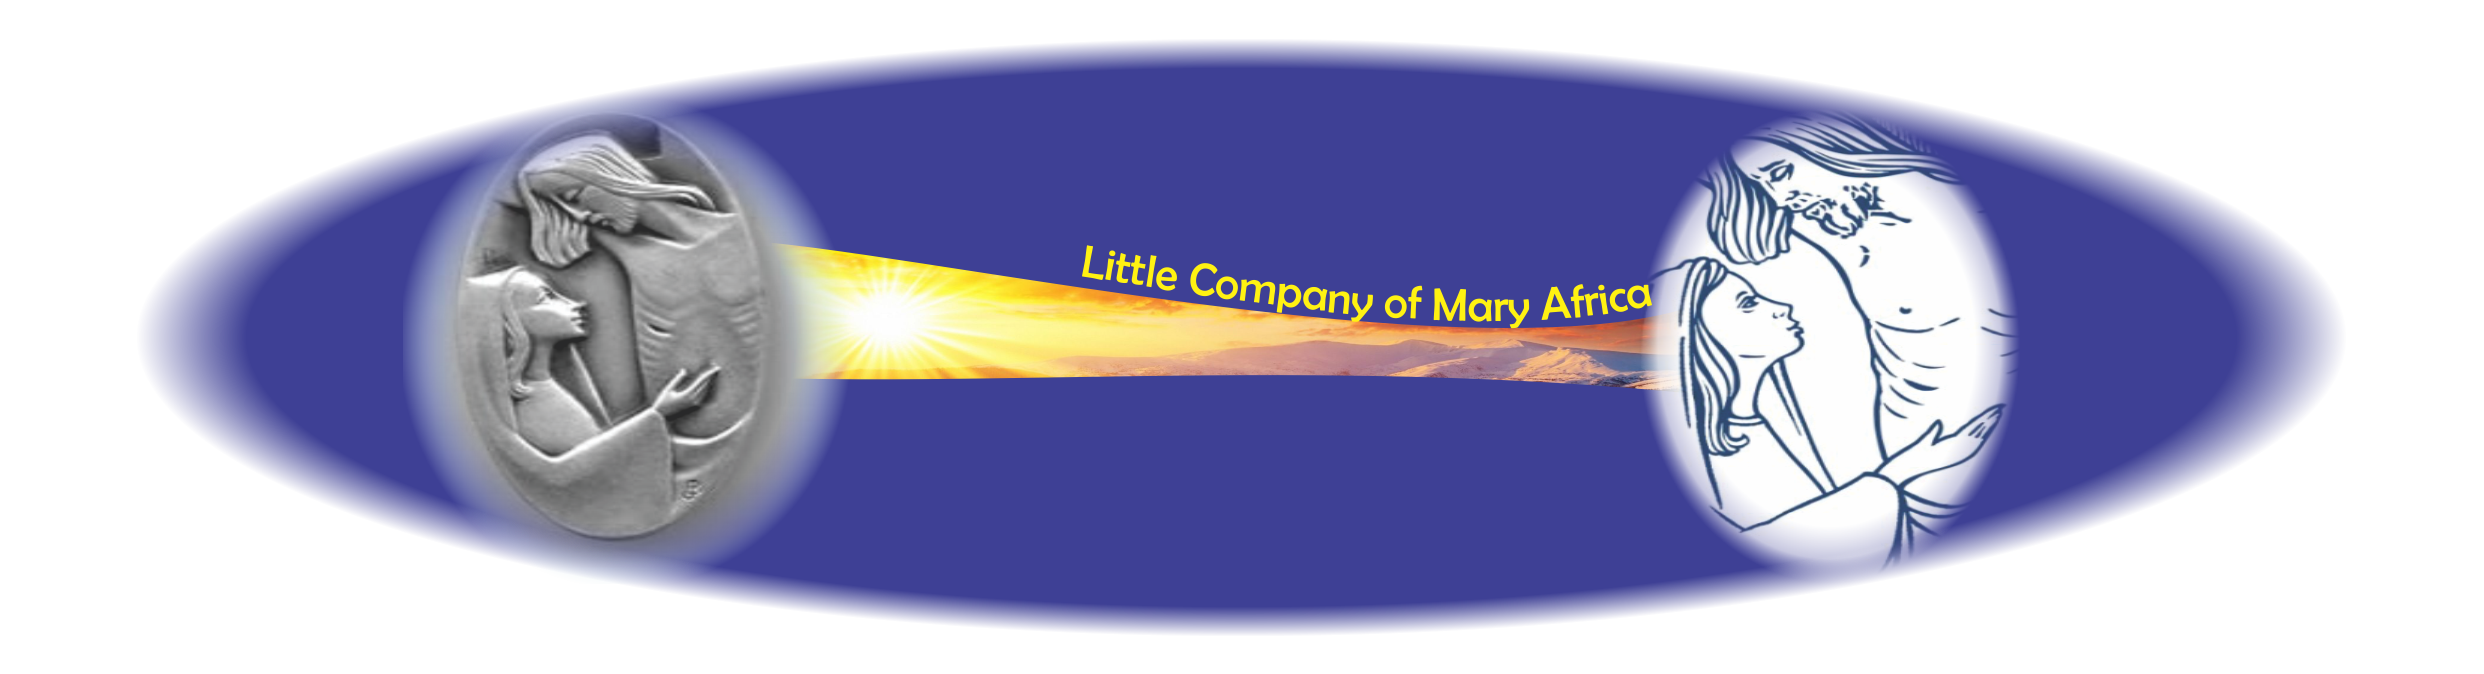 Little Company of Mary Africa